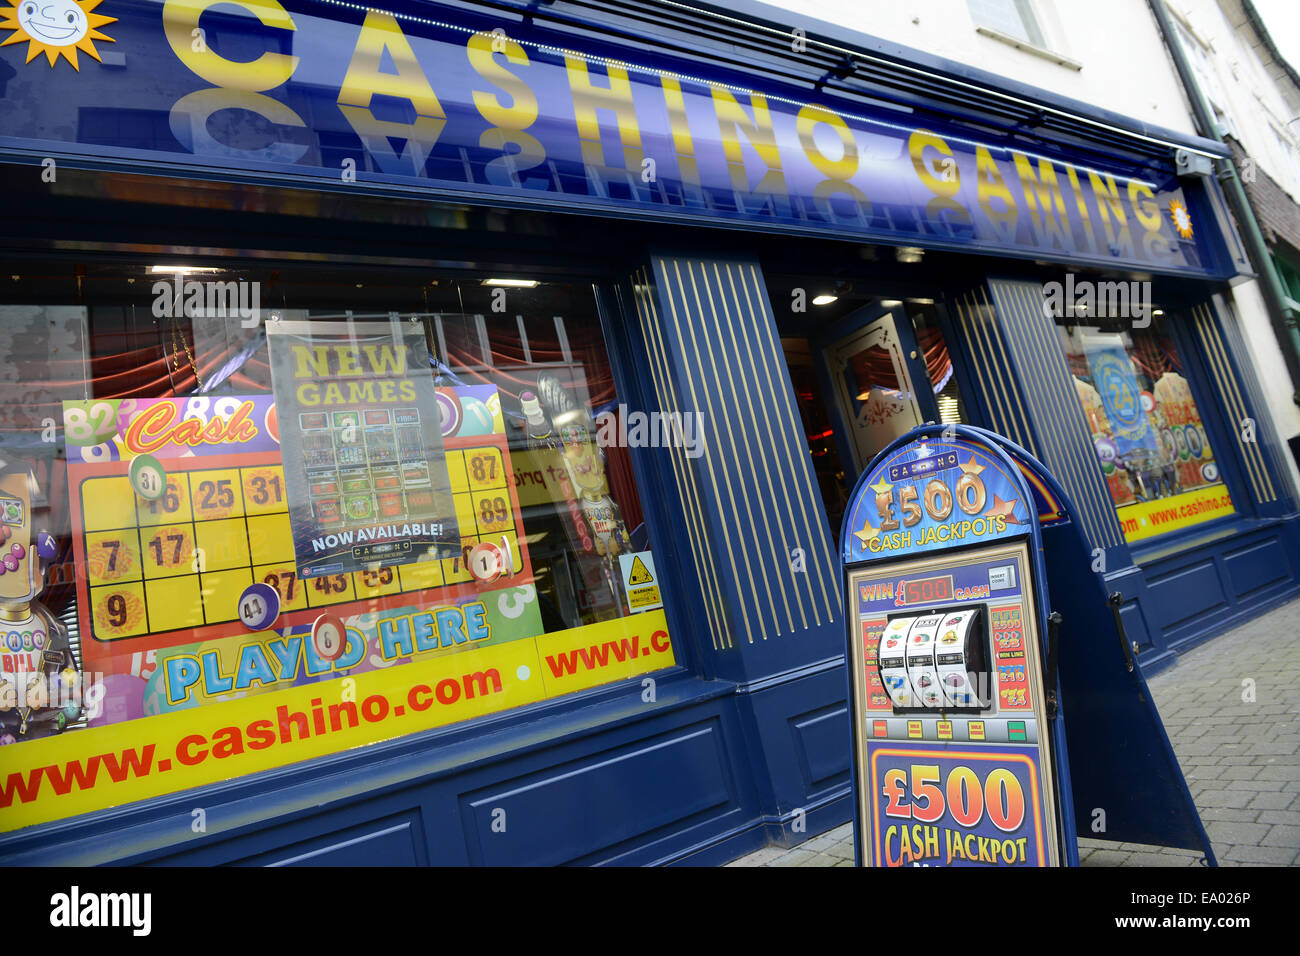 Jeux Casino boutique sur la rue Wellington, Nouvelle dans le Shropshire Uk casino slot machine Photo Stock